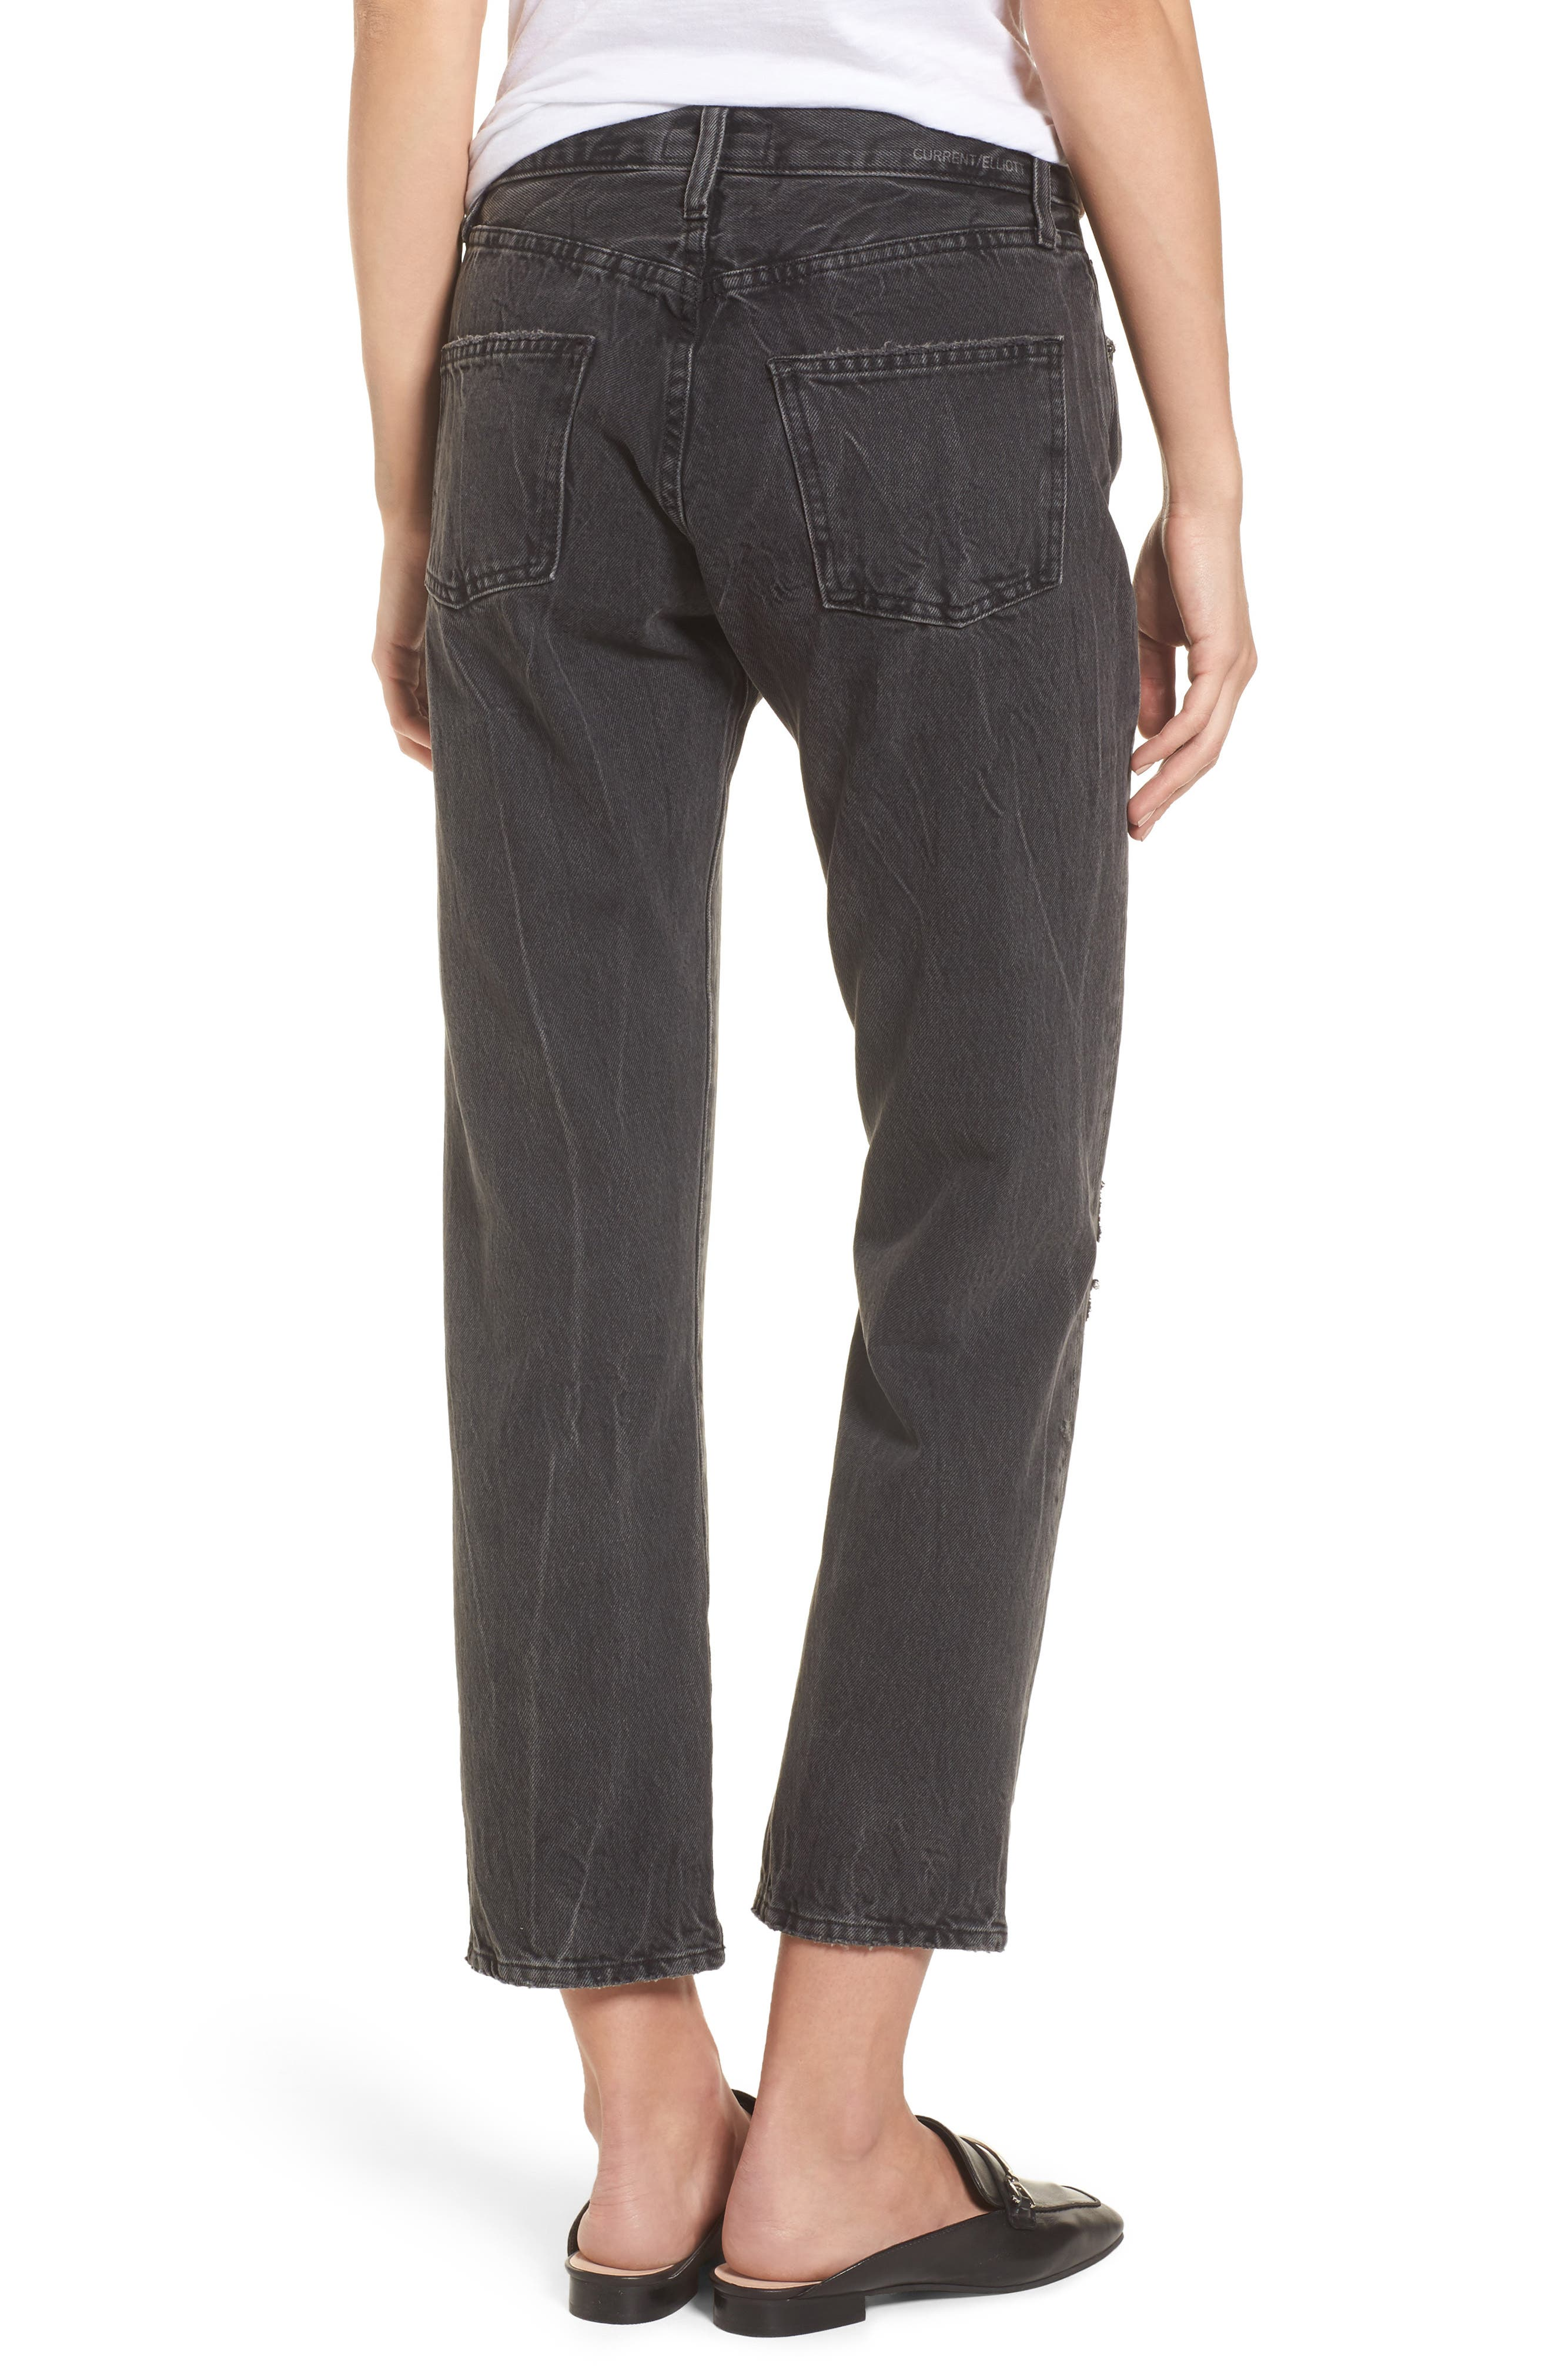 Alternate Image 2  - Current/Elliott The Original Straight Leg Crop Jeans (Valo Destroy)